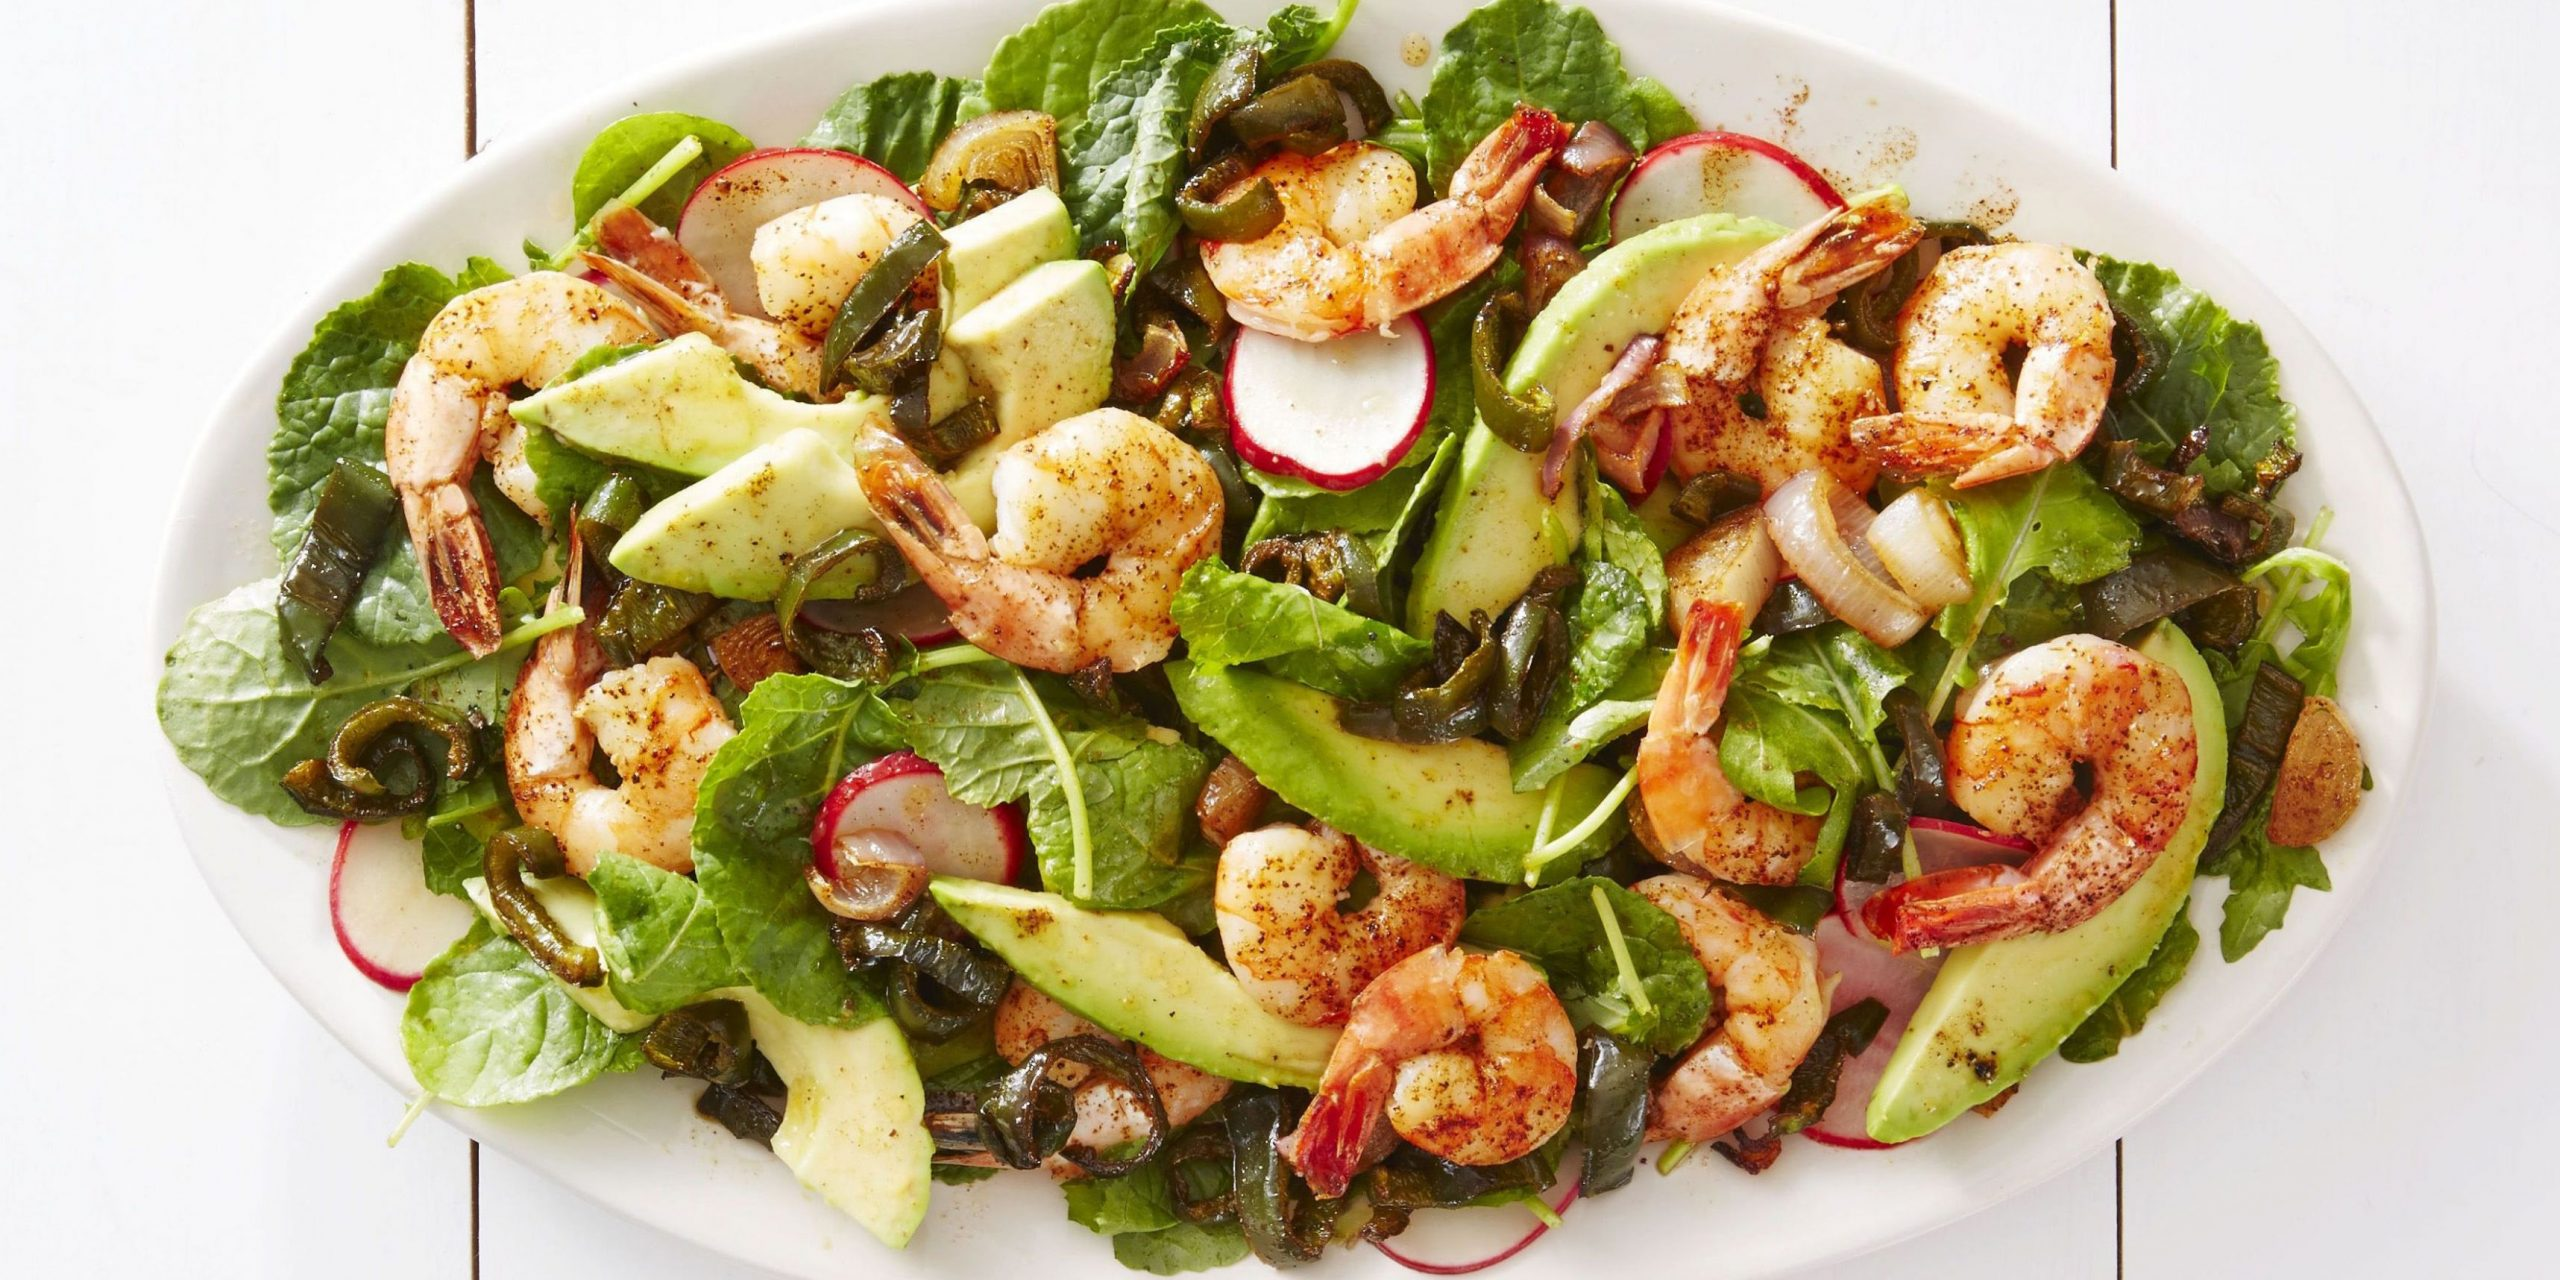 12 Easy Summer Salads - Best Summer Salad Recipes